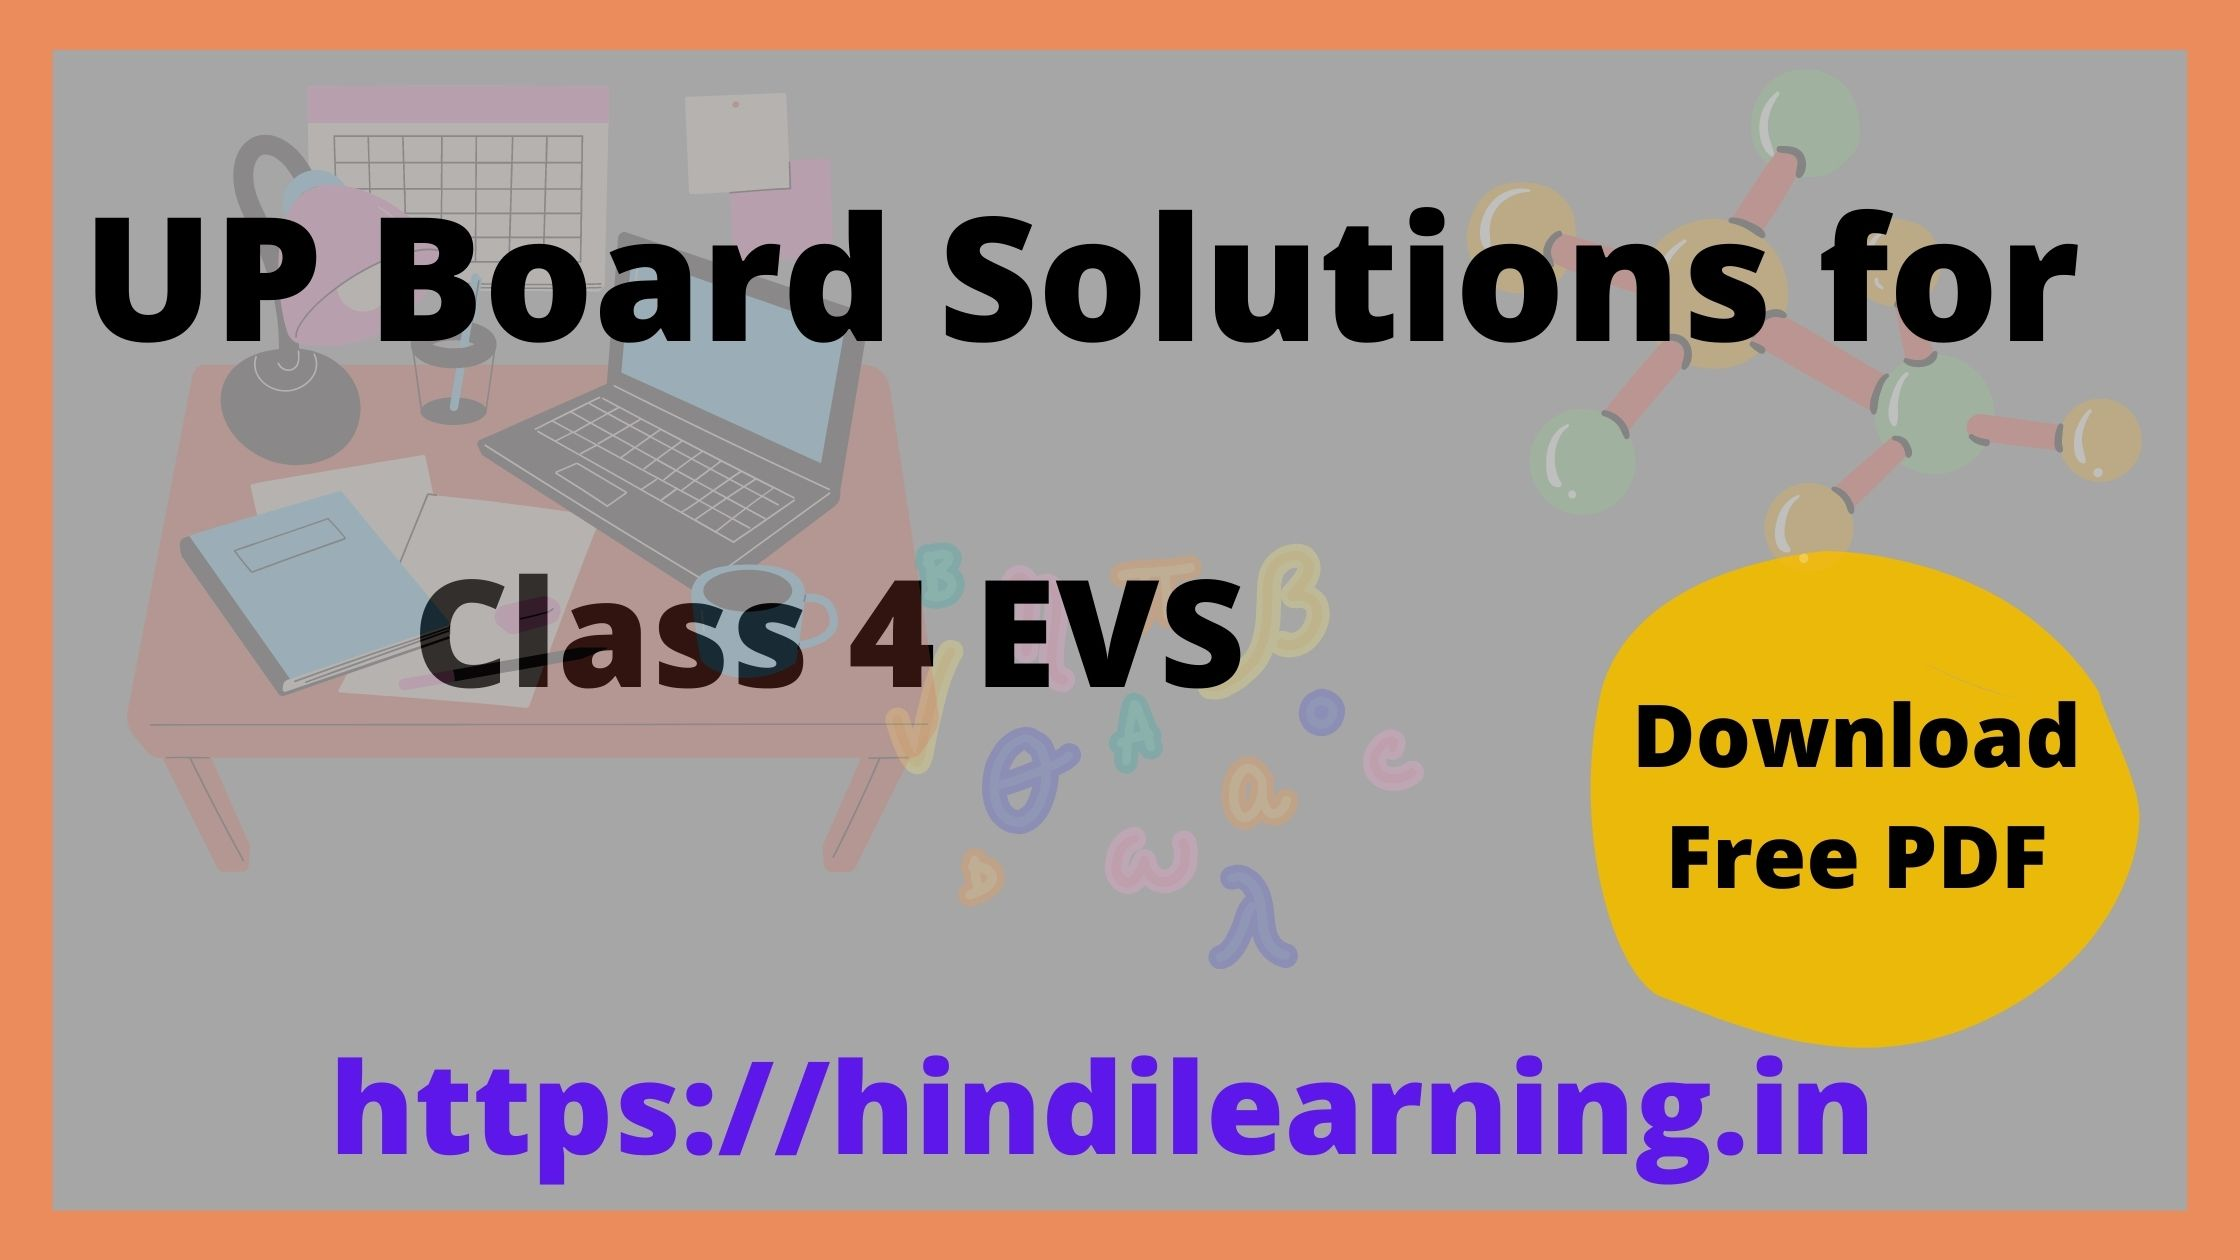 UP Board Solutions for Class 4 Environmental Studies हमारा परिवेश